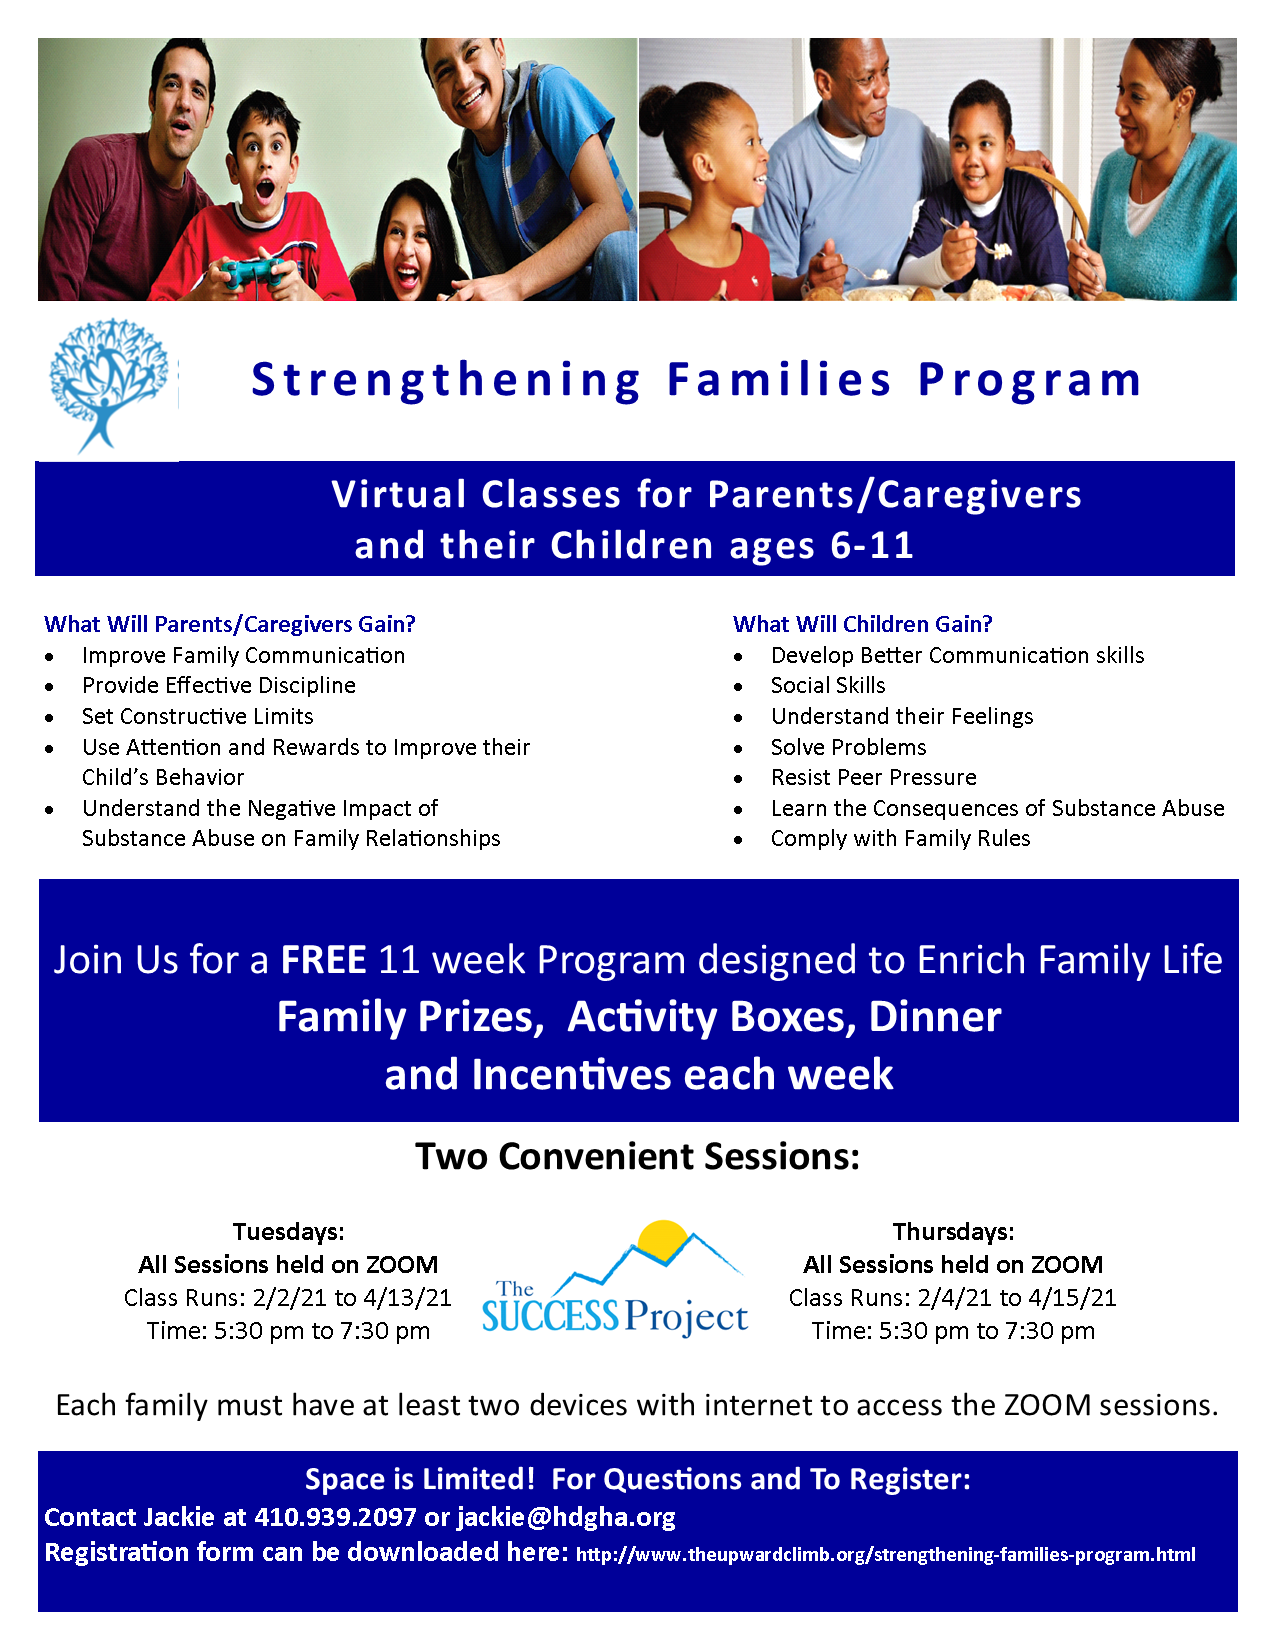 Click on document below to learn more about strengthening families program.